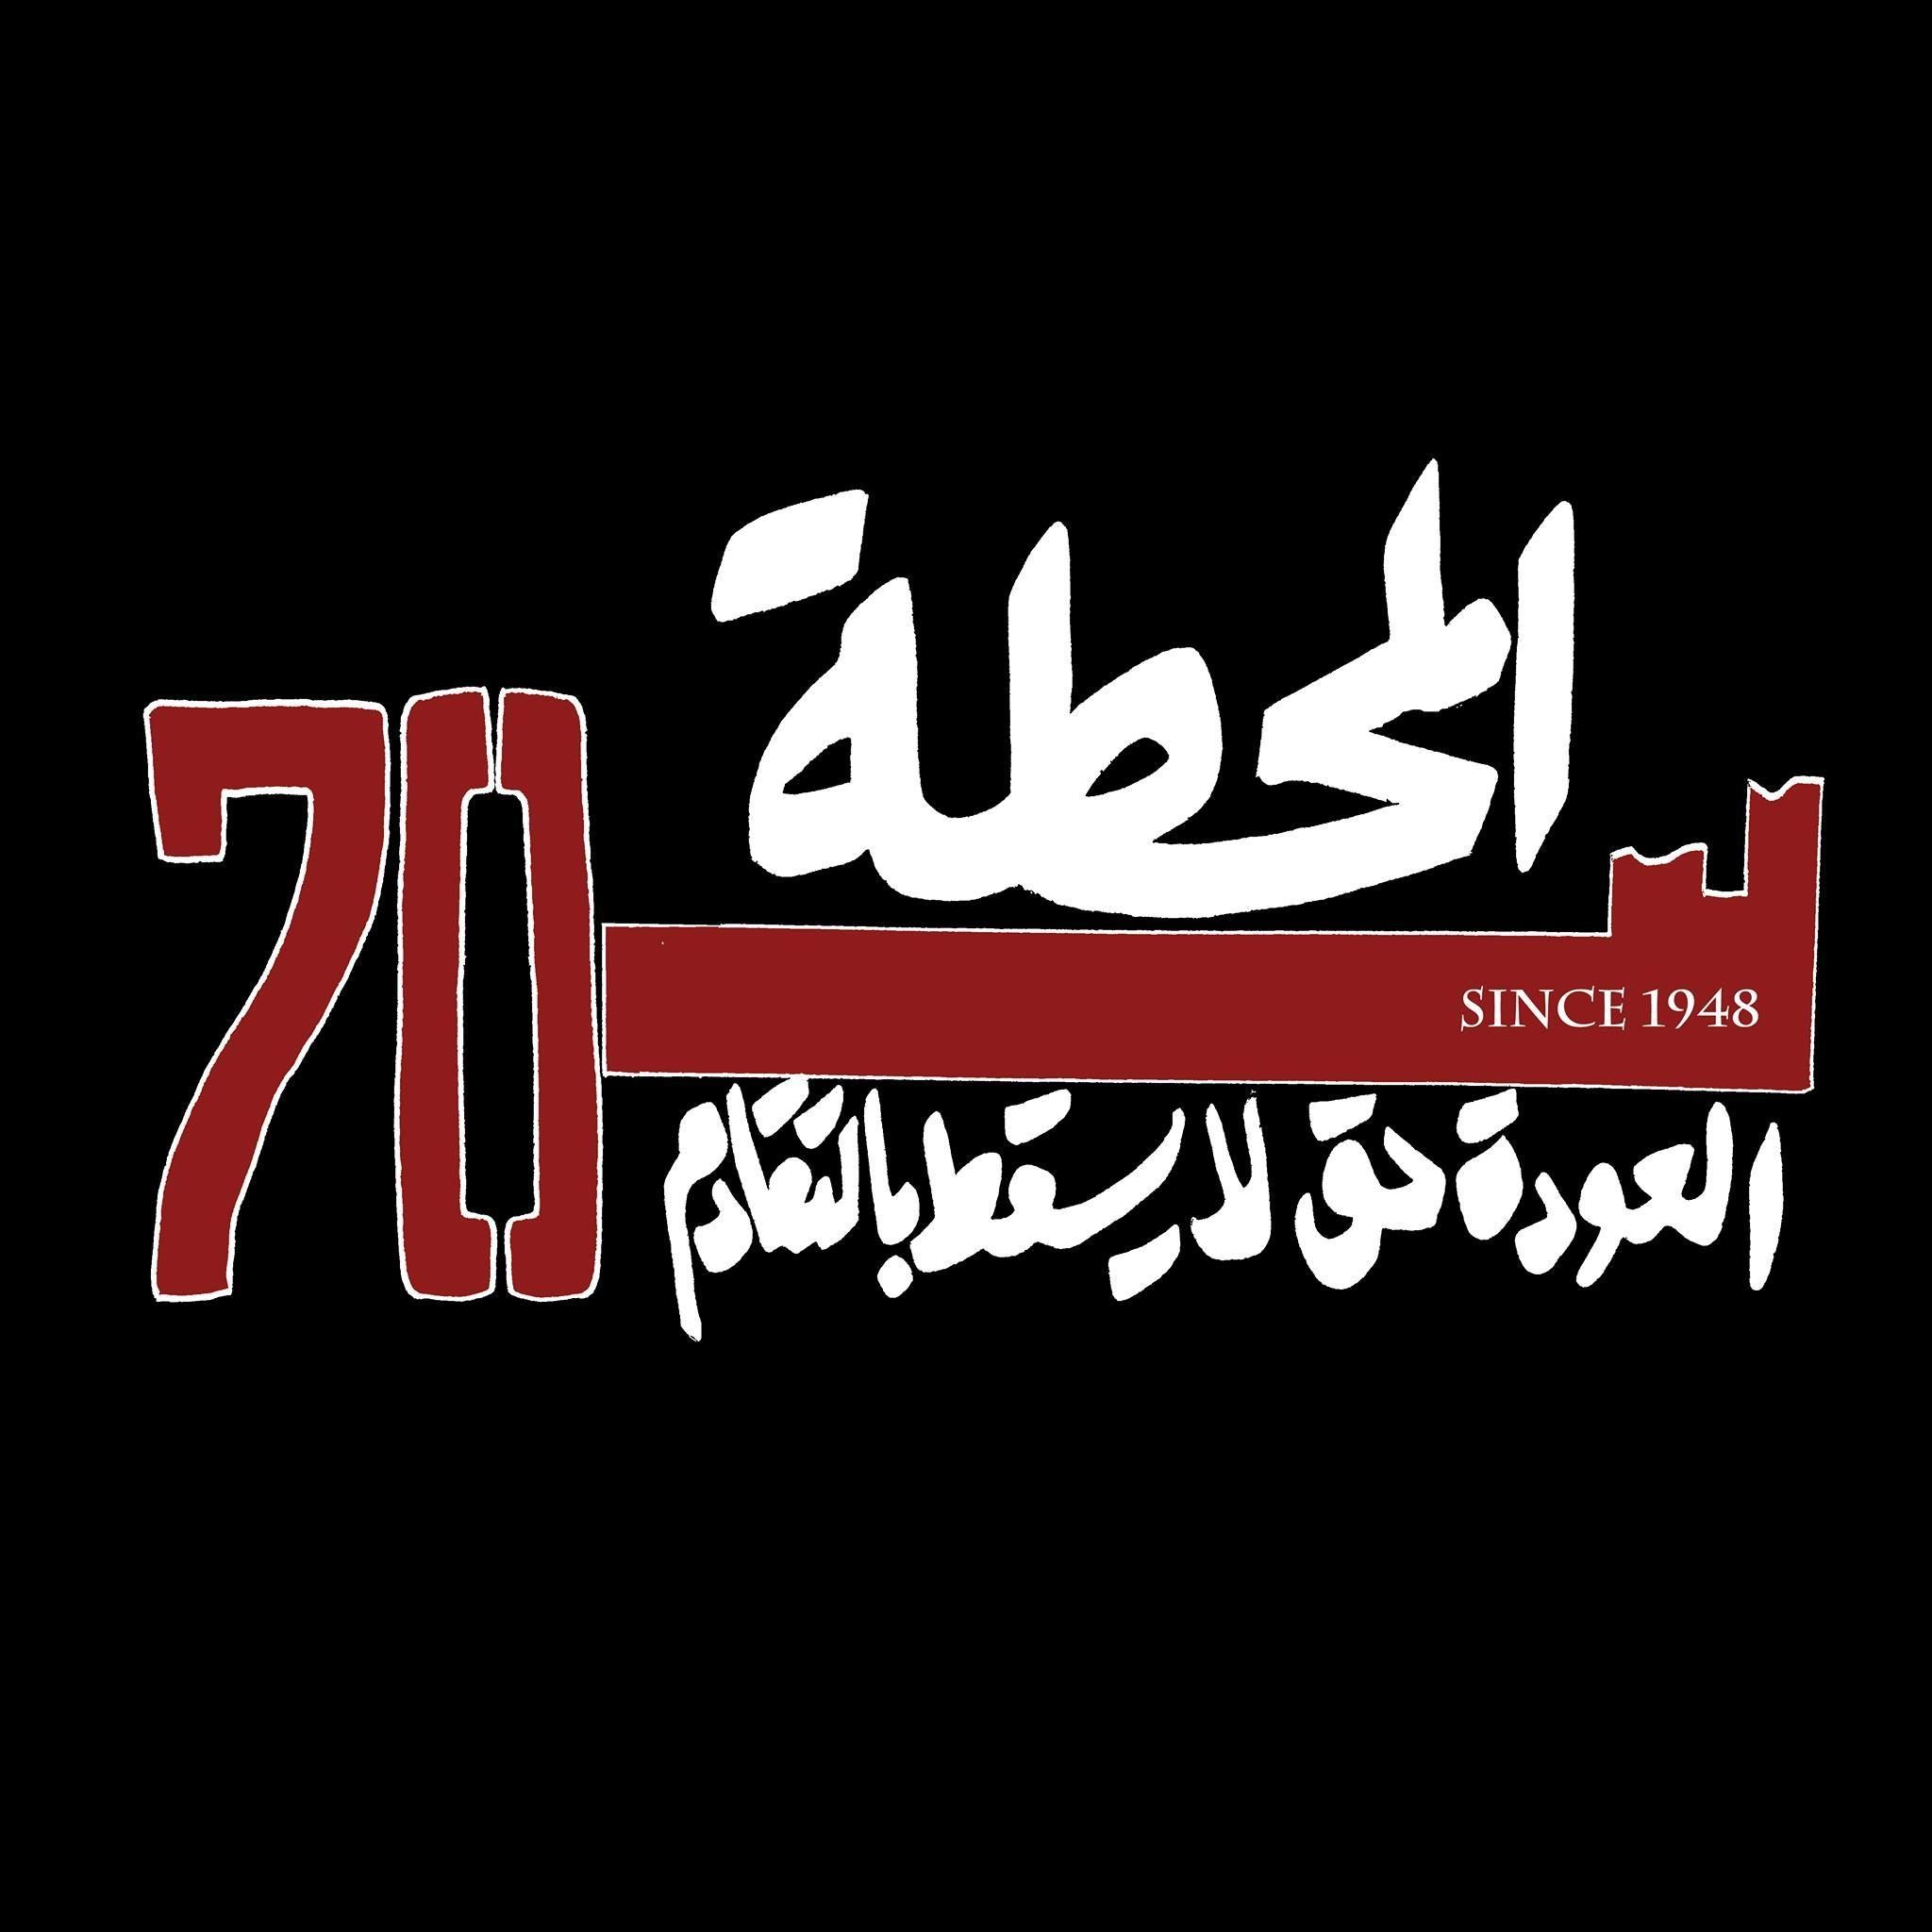 Shoruq Organization Launches 'Station 70' Campaign Commemorating the Nakba